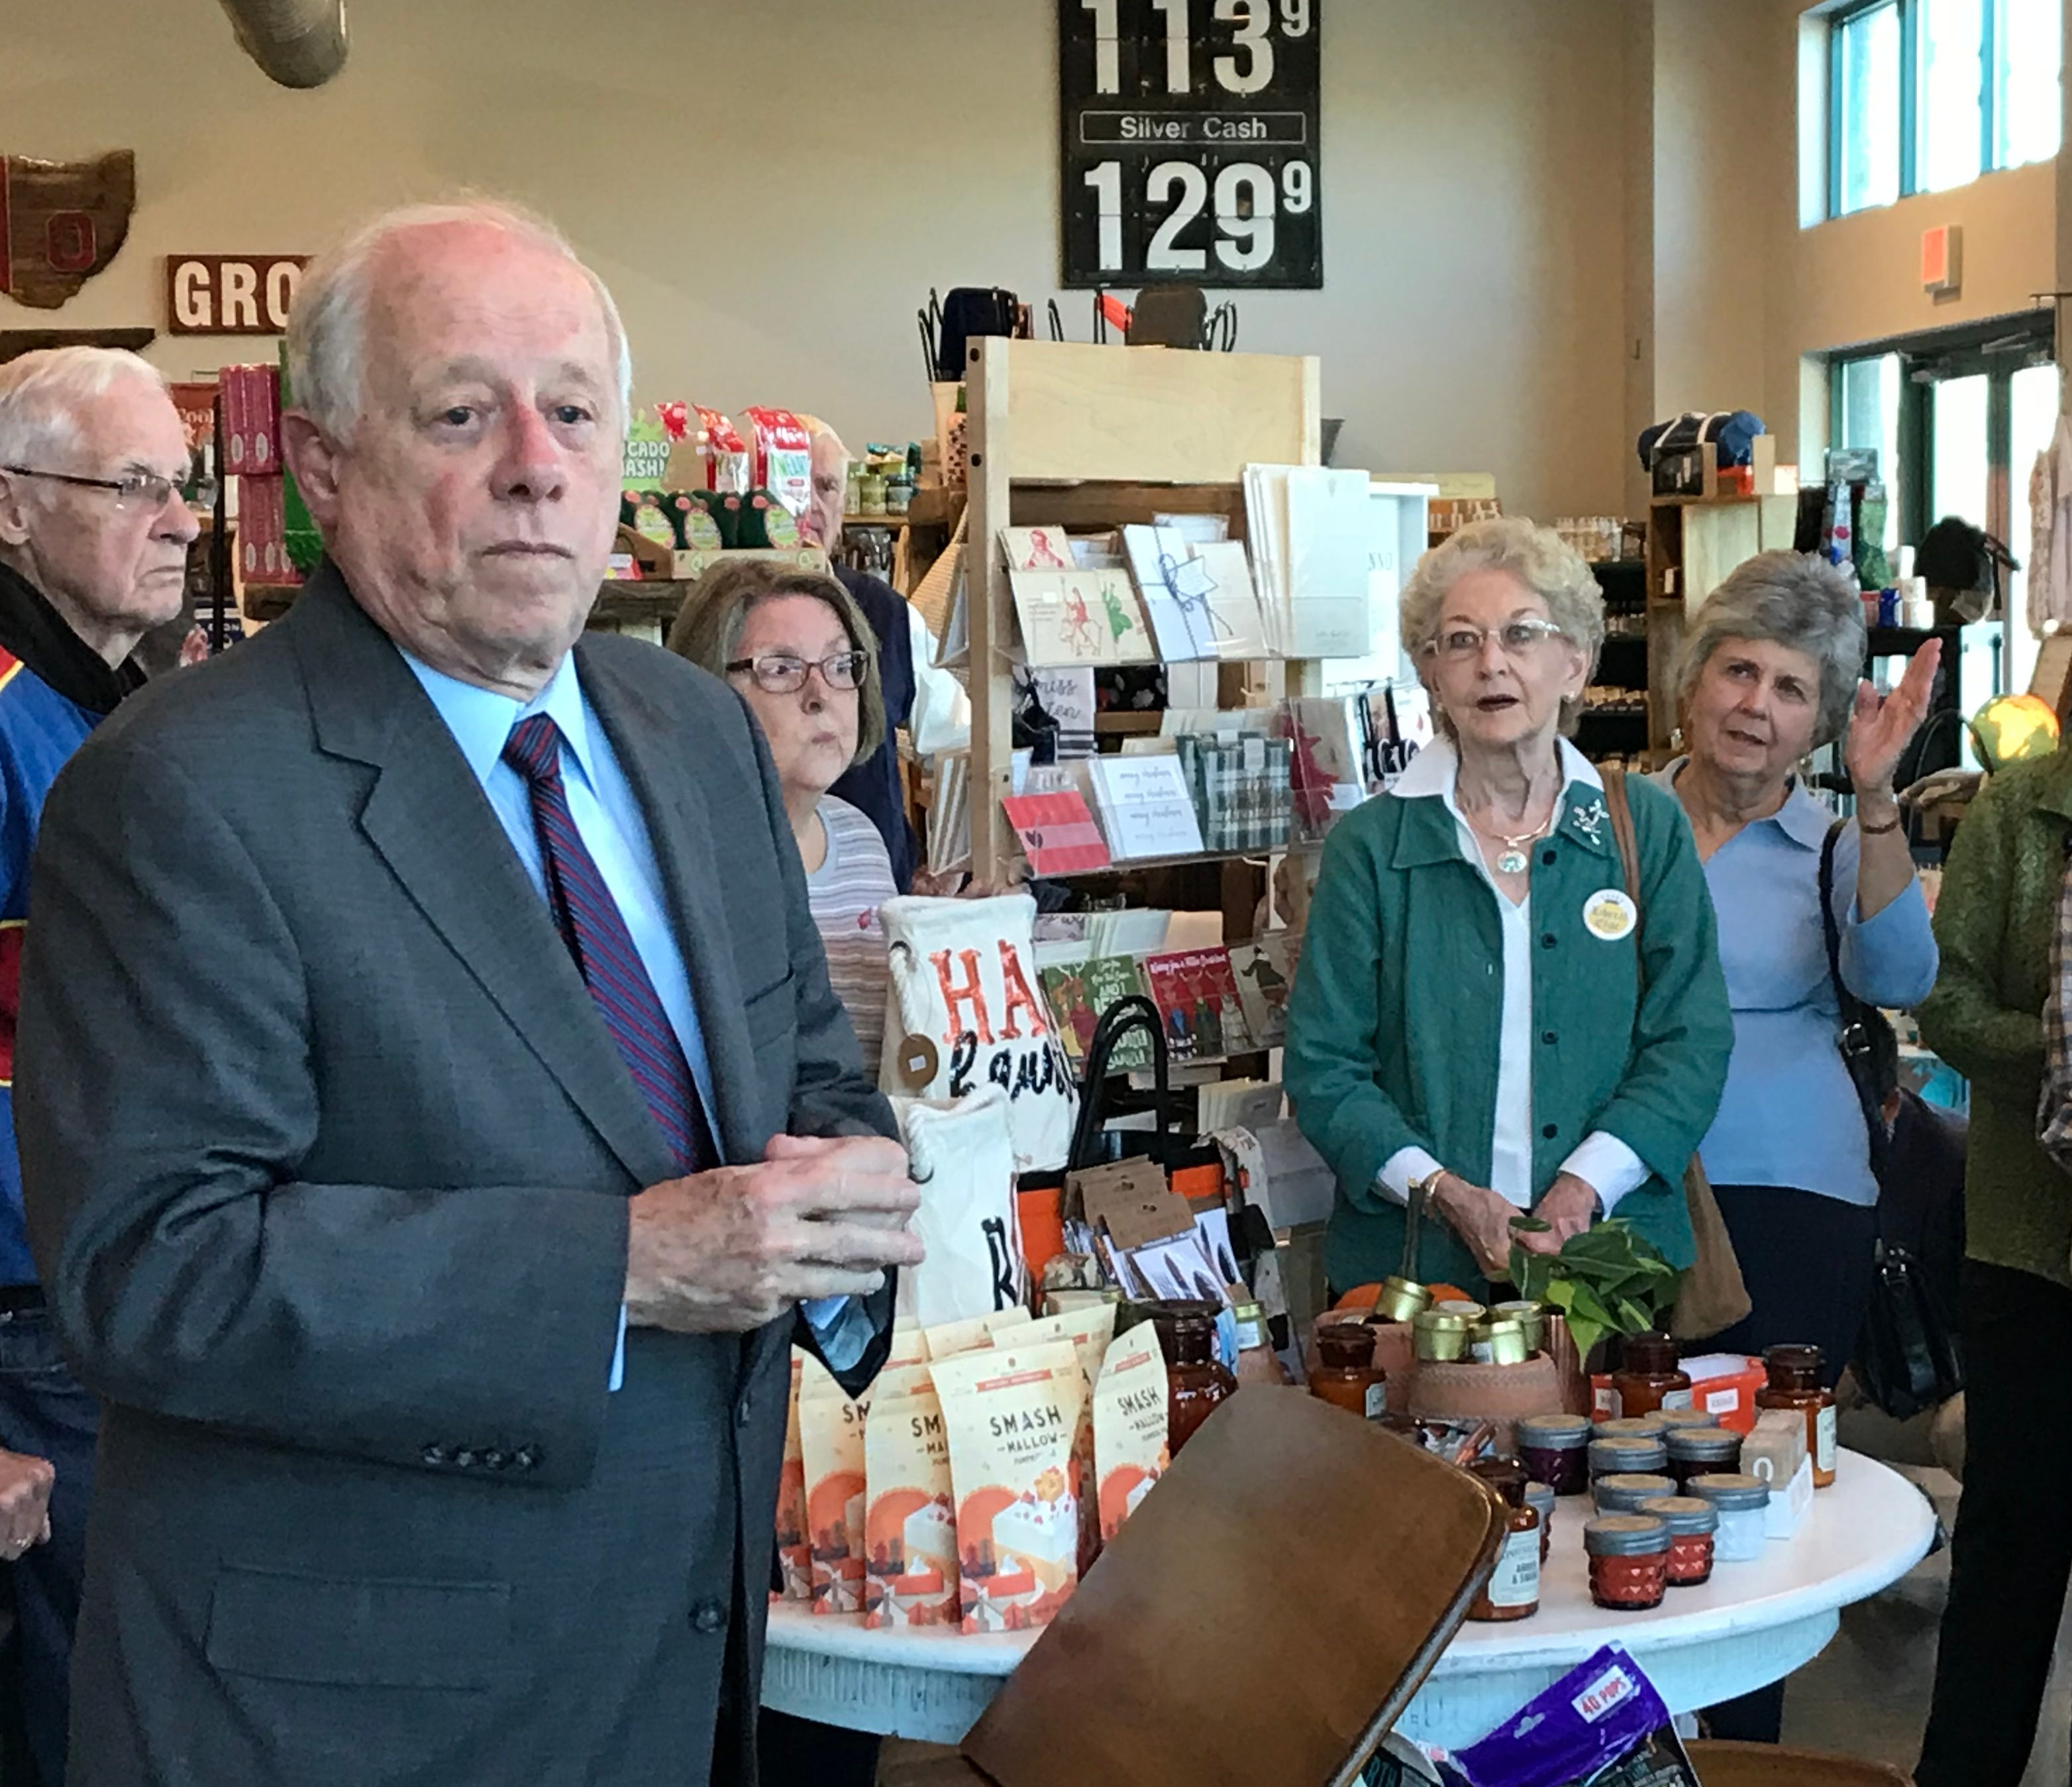 U.S. Senate candidate Phil Bredesen talks to people gathered at Sango Pharmacy in Clarksville on Tuesday, Oct. 23.